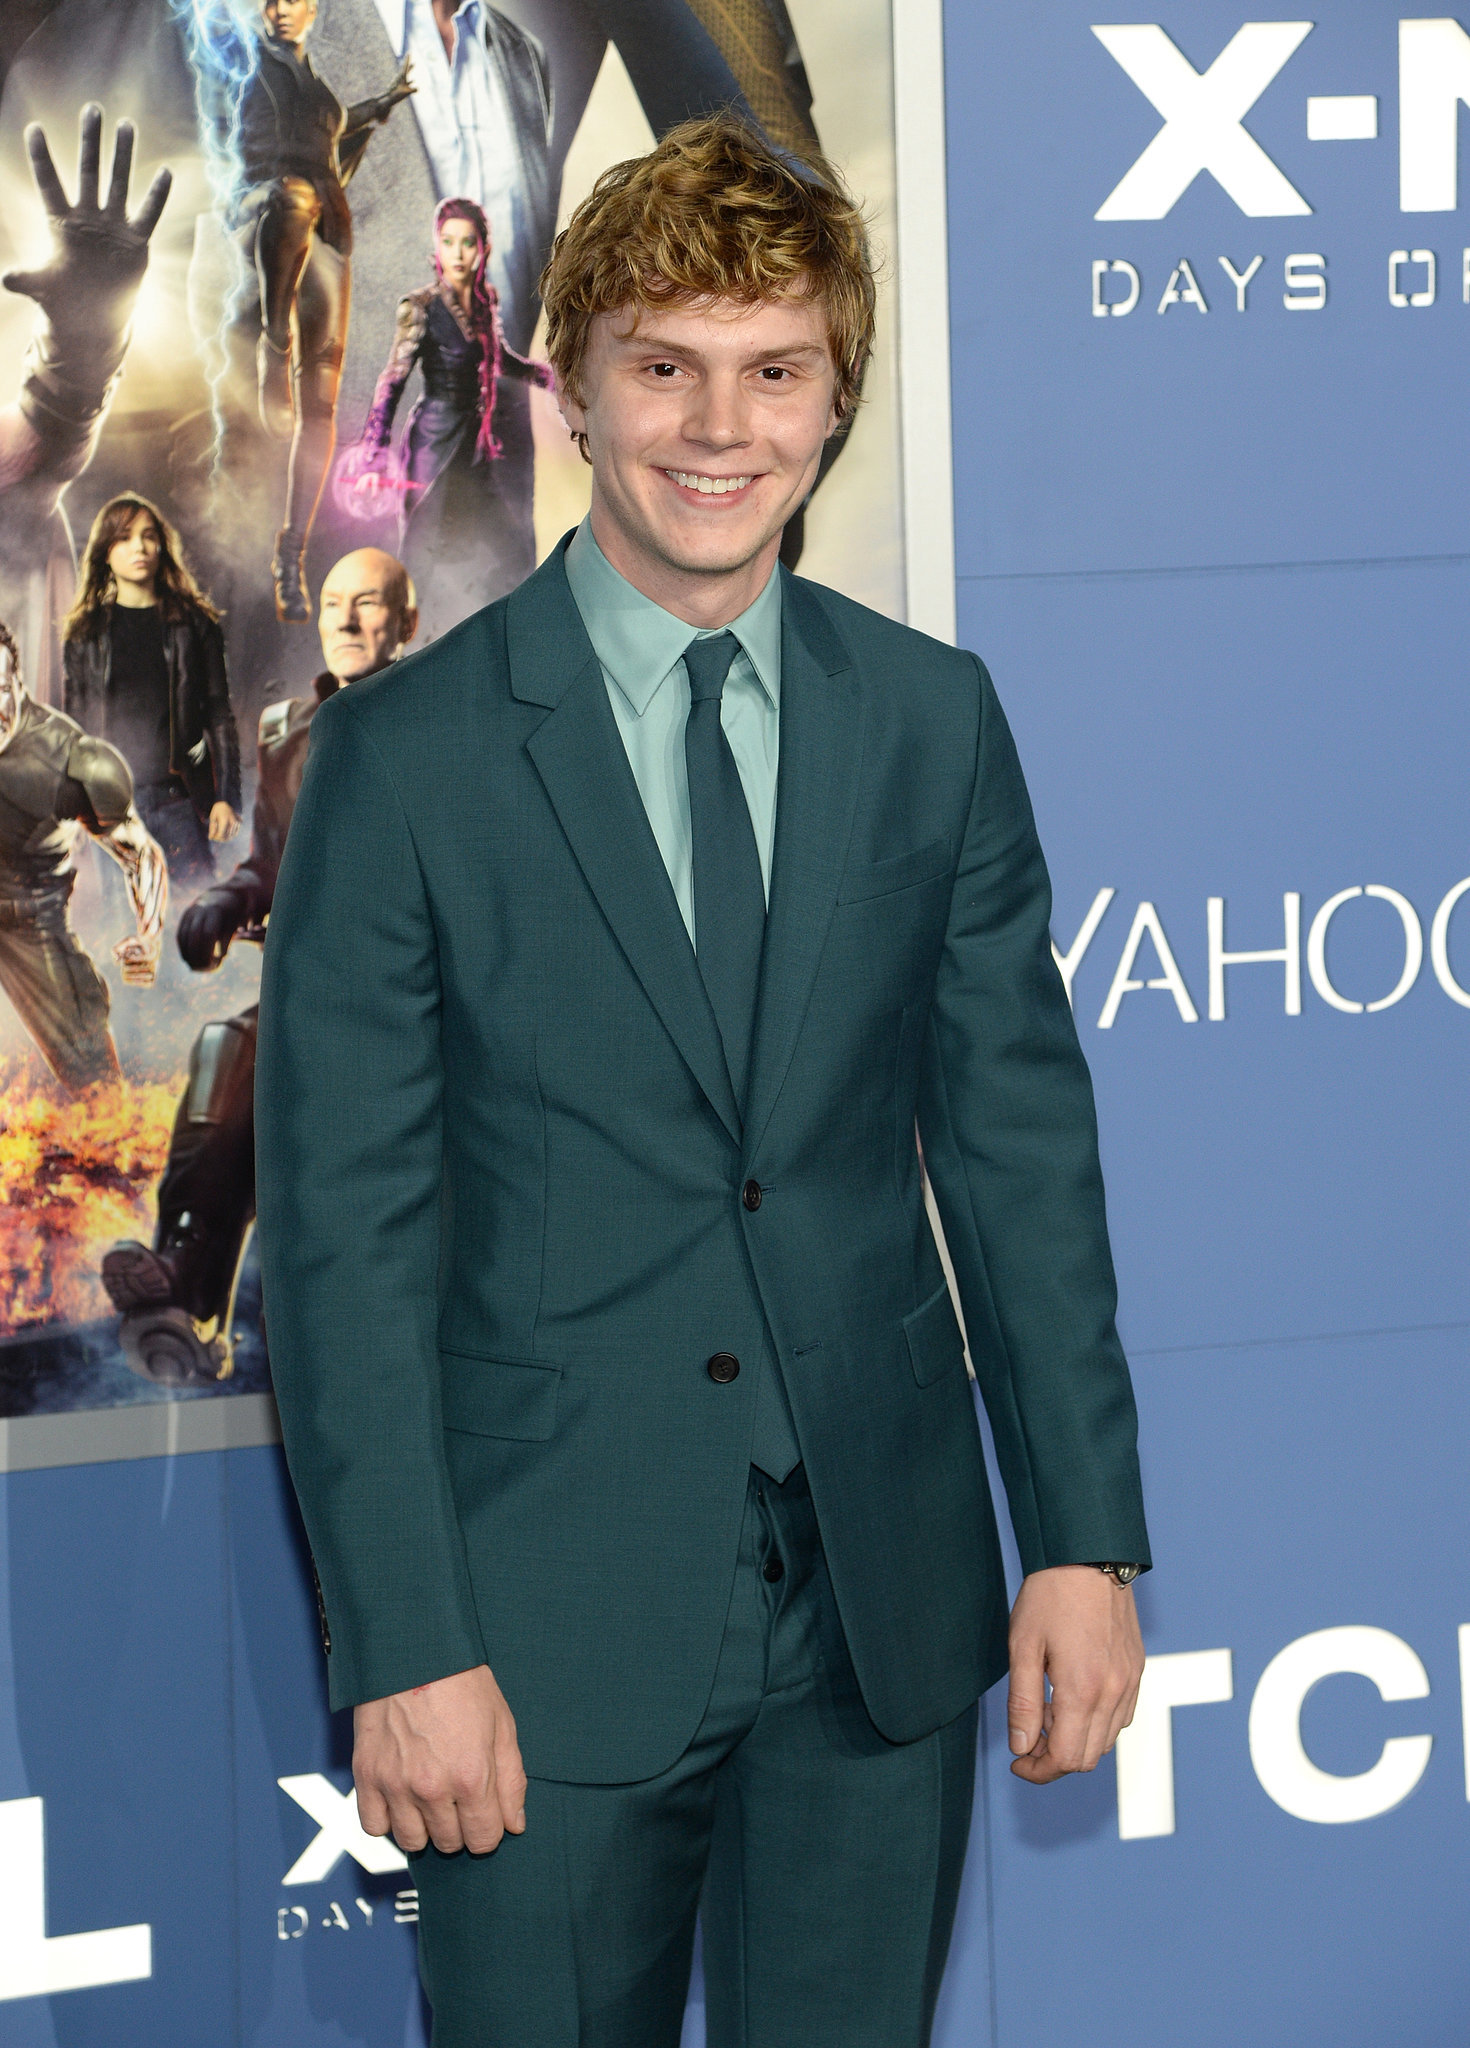 Evan Peters suited up for his big premiere.